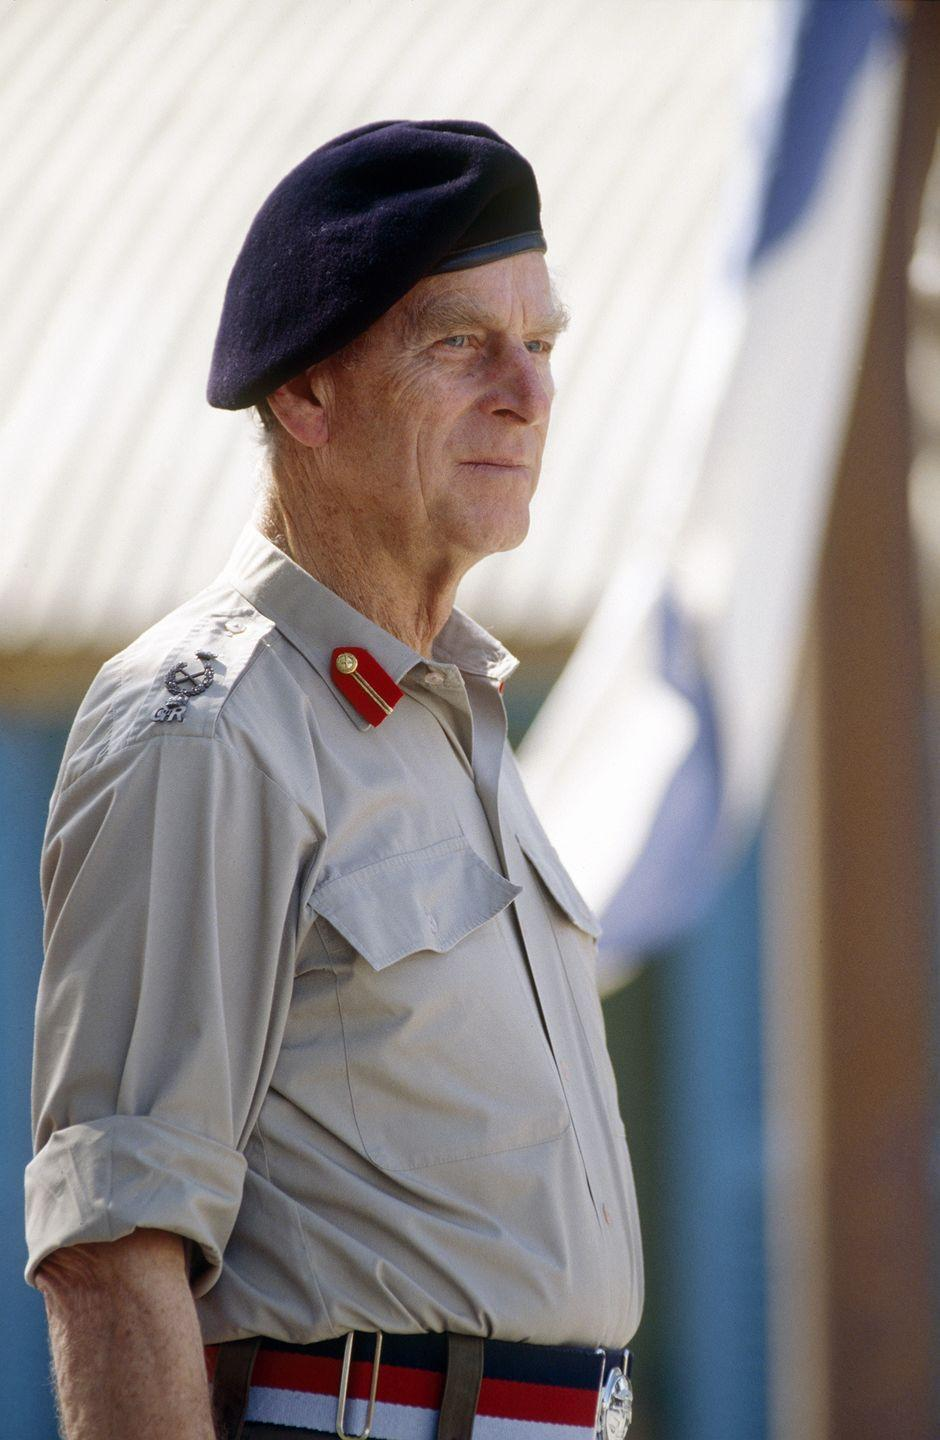 """<p><a href=""""https://www.goodhousekeeping.com/uk/news/a564867/prince-philip-and-prince-harry-similarities/"""" rel=""""nofollow noopener"""" target=""""_blank"""" data-ylk=""""slk:Prince Philip"""" class=""""link rapid-noclick-resp"""">Prince Philip</a> on Lara Beach, Turkey, donning a more relaxed army uniform. </p>"""